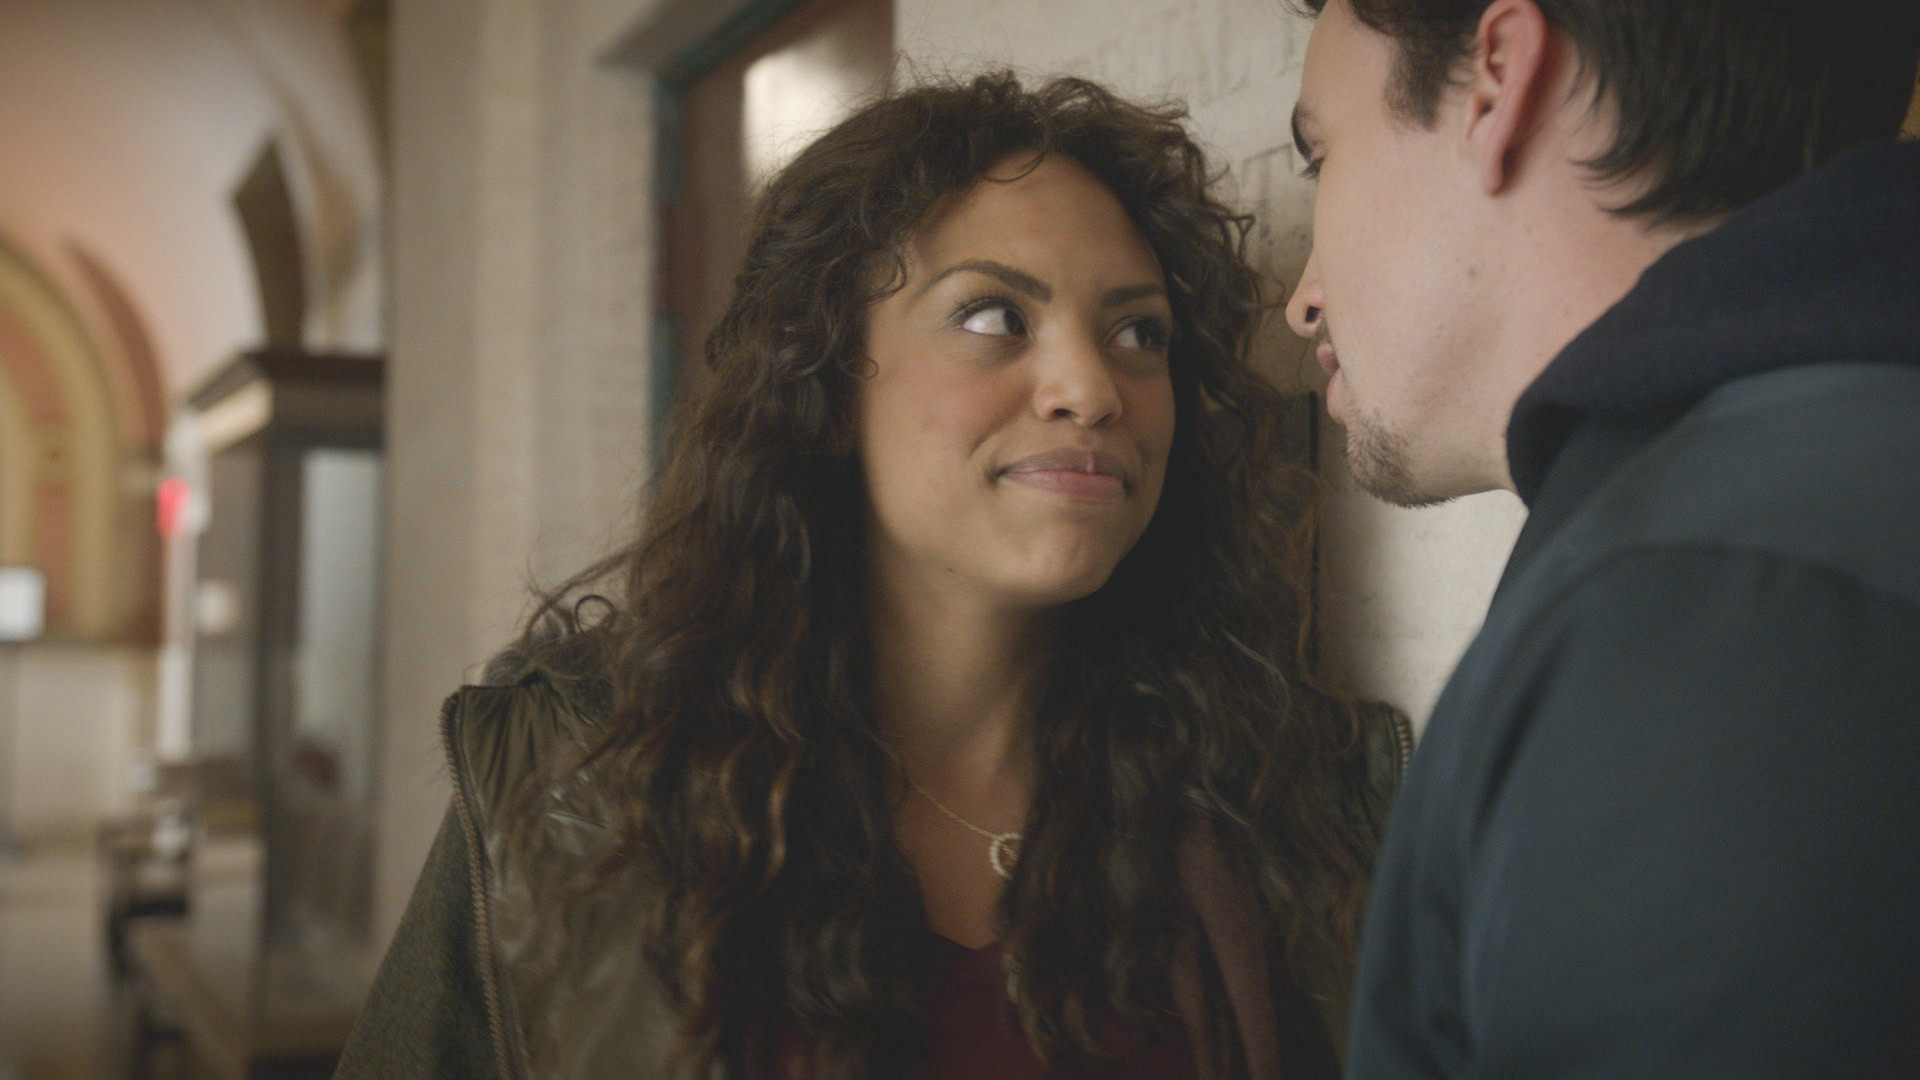 Danny meets with her boyfriend in the courthouse hallway.